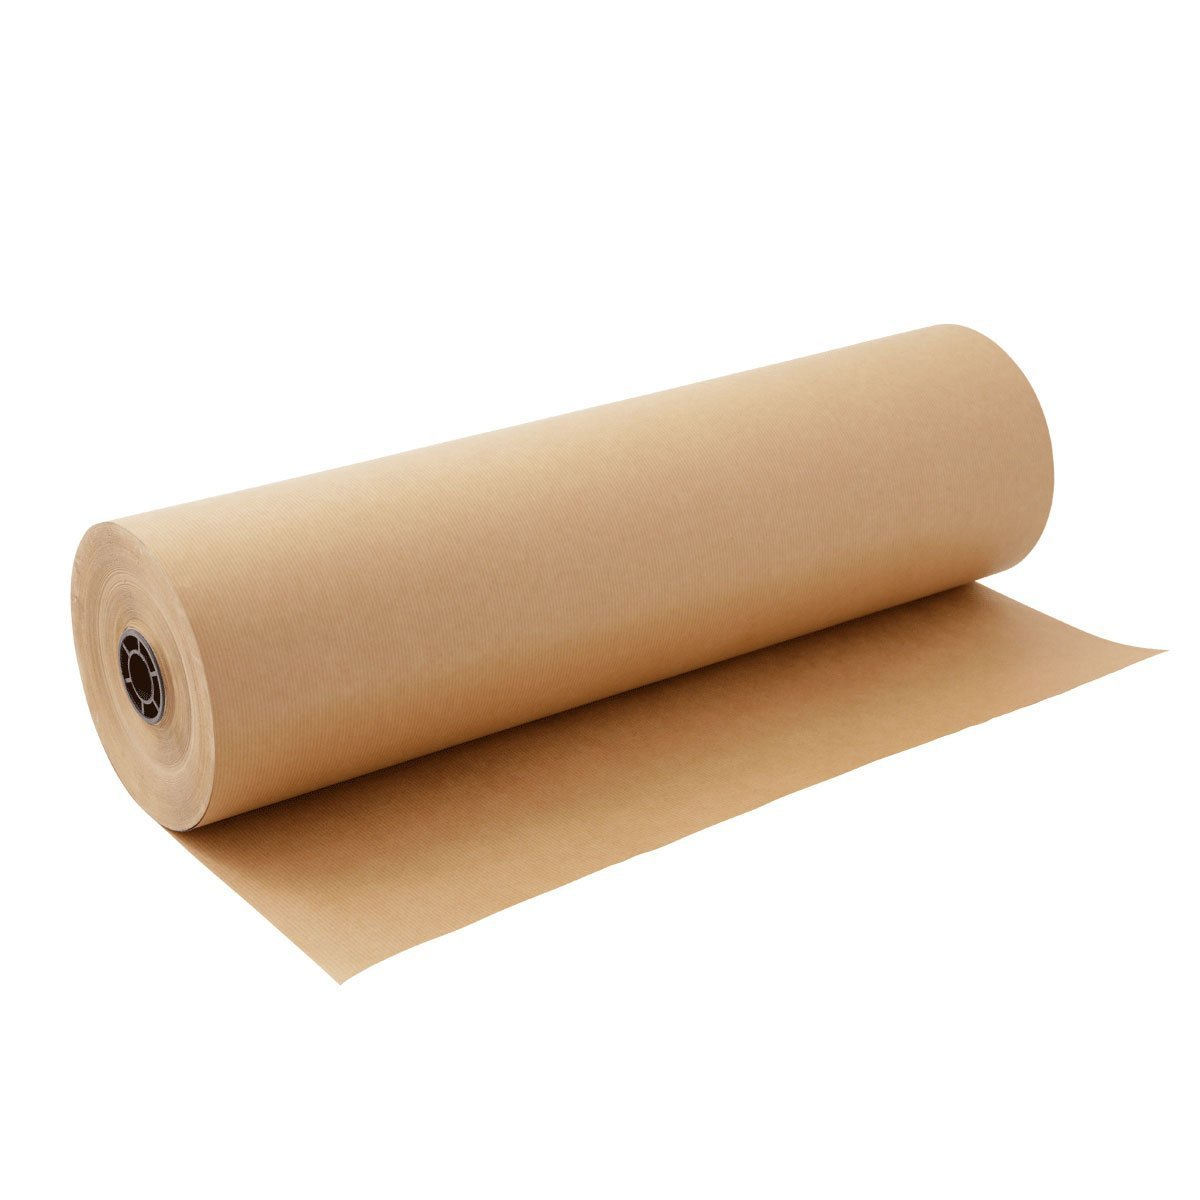 Kraft Paper Roll 30'' X 1800'' (150ft) Brown Mega Roll - Made in Usa 100% Natural Recycled Material - Perfect for Packing, Wrapping, Butcher, Craft, Postal, Shipping, Dunnage and Parcel